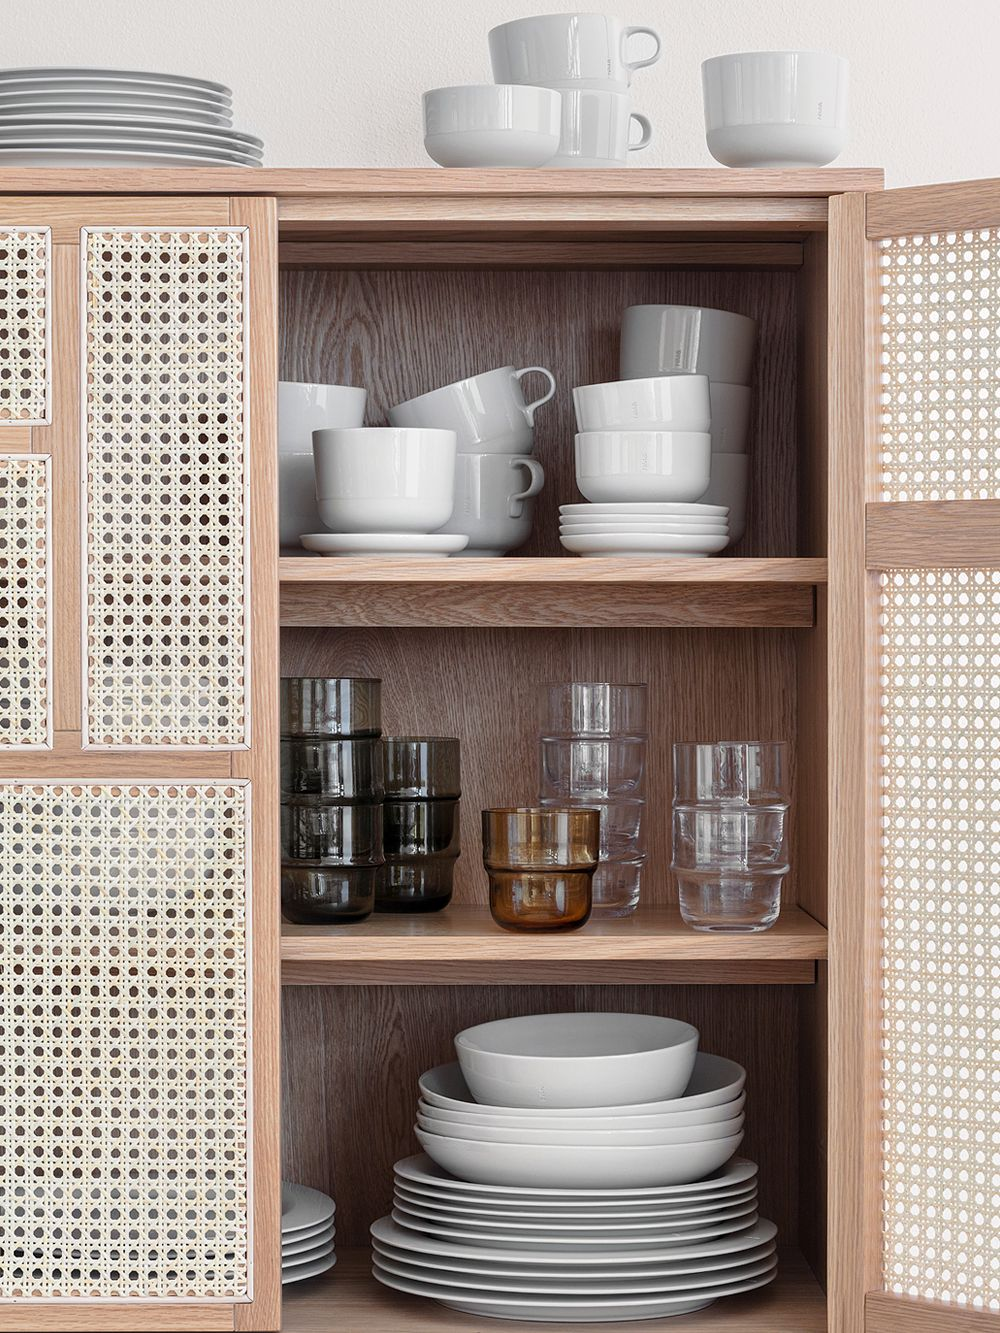 Design House Stockholm Sand tableware